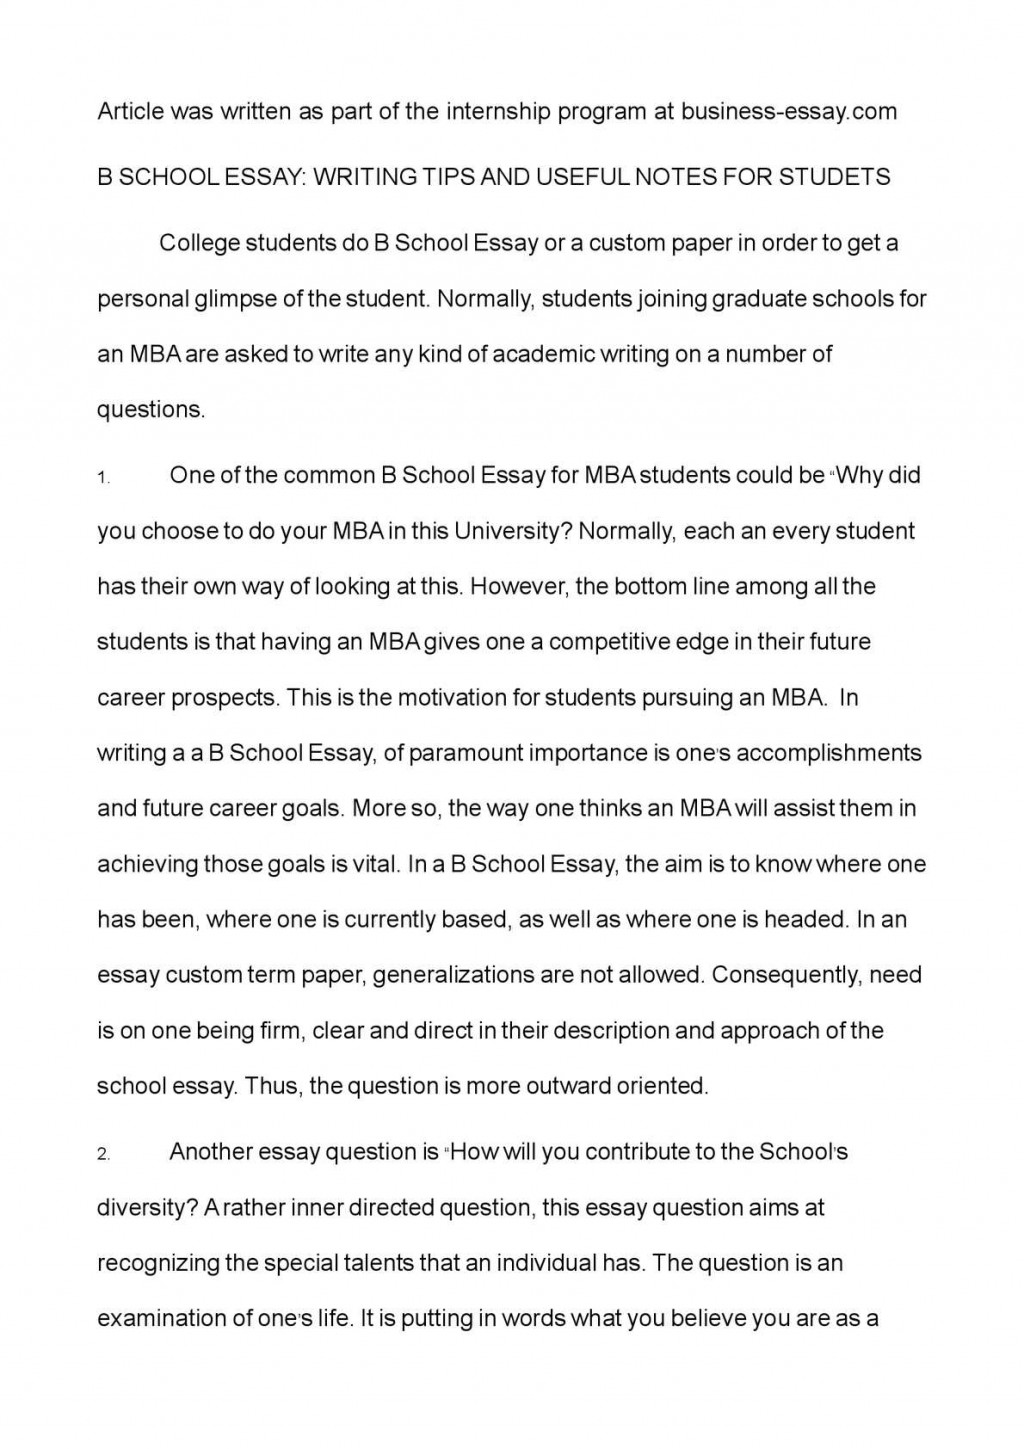 003 Essay Example On Diversity Breathtaking For College Admission Regional In India Indian Culture Large